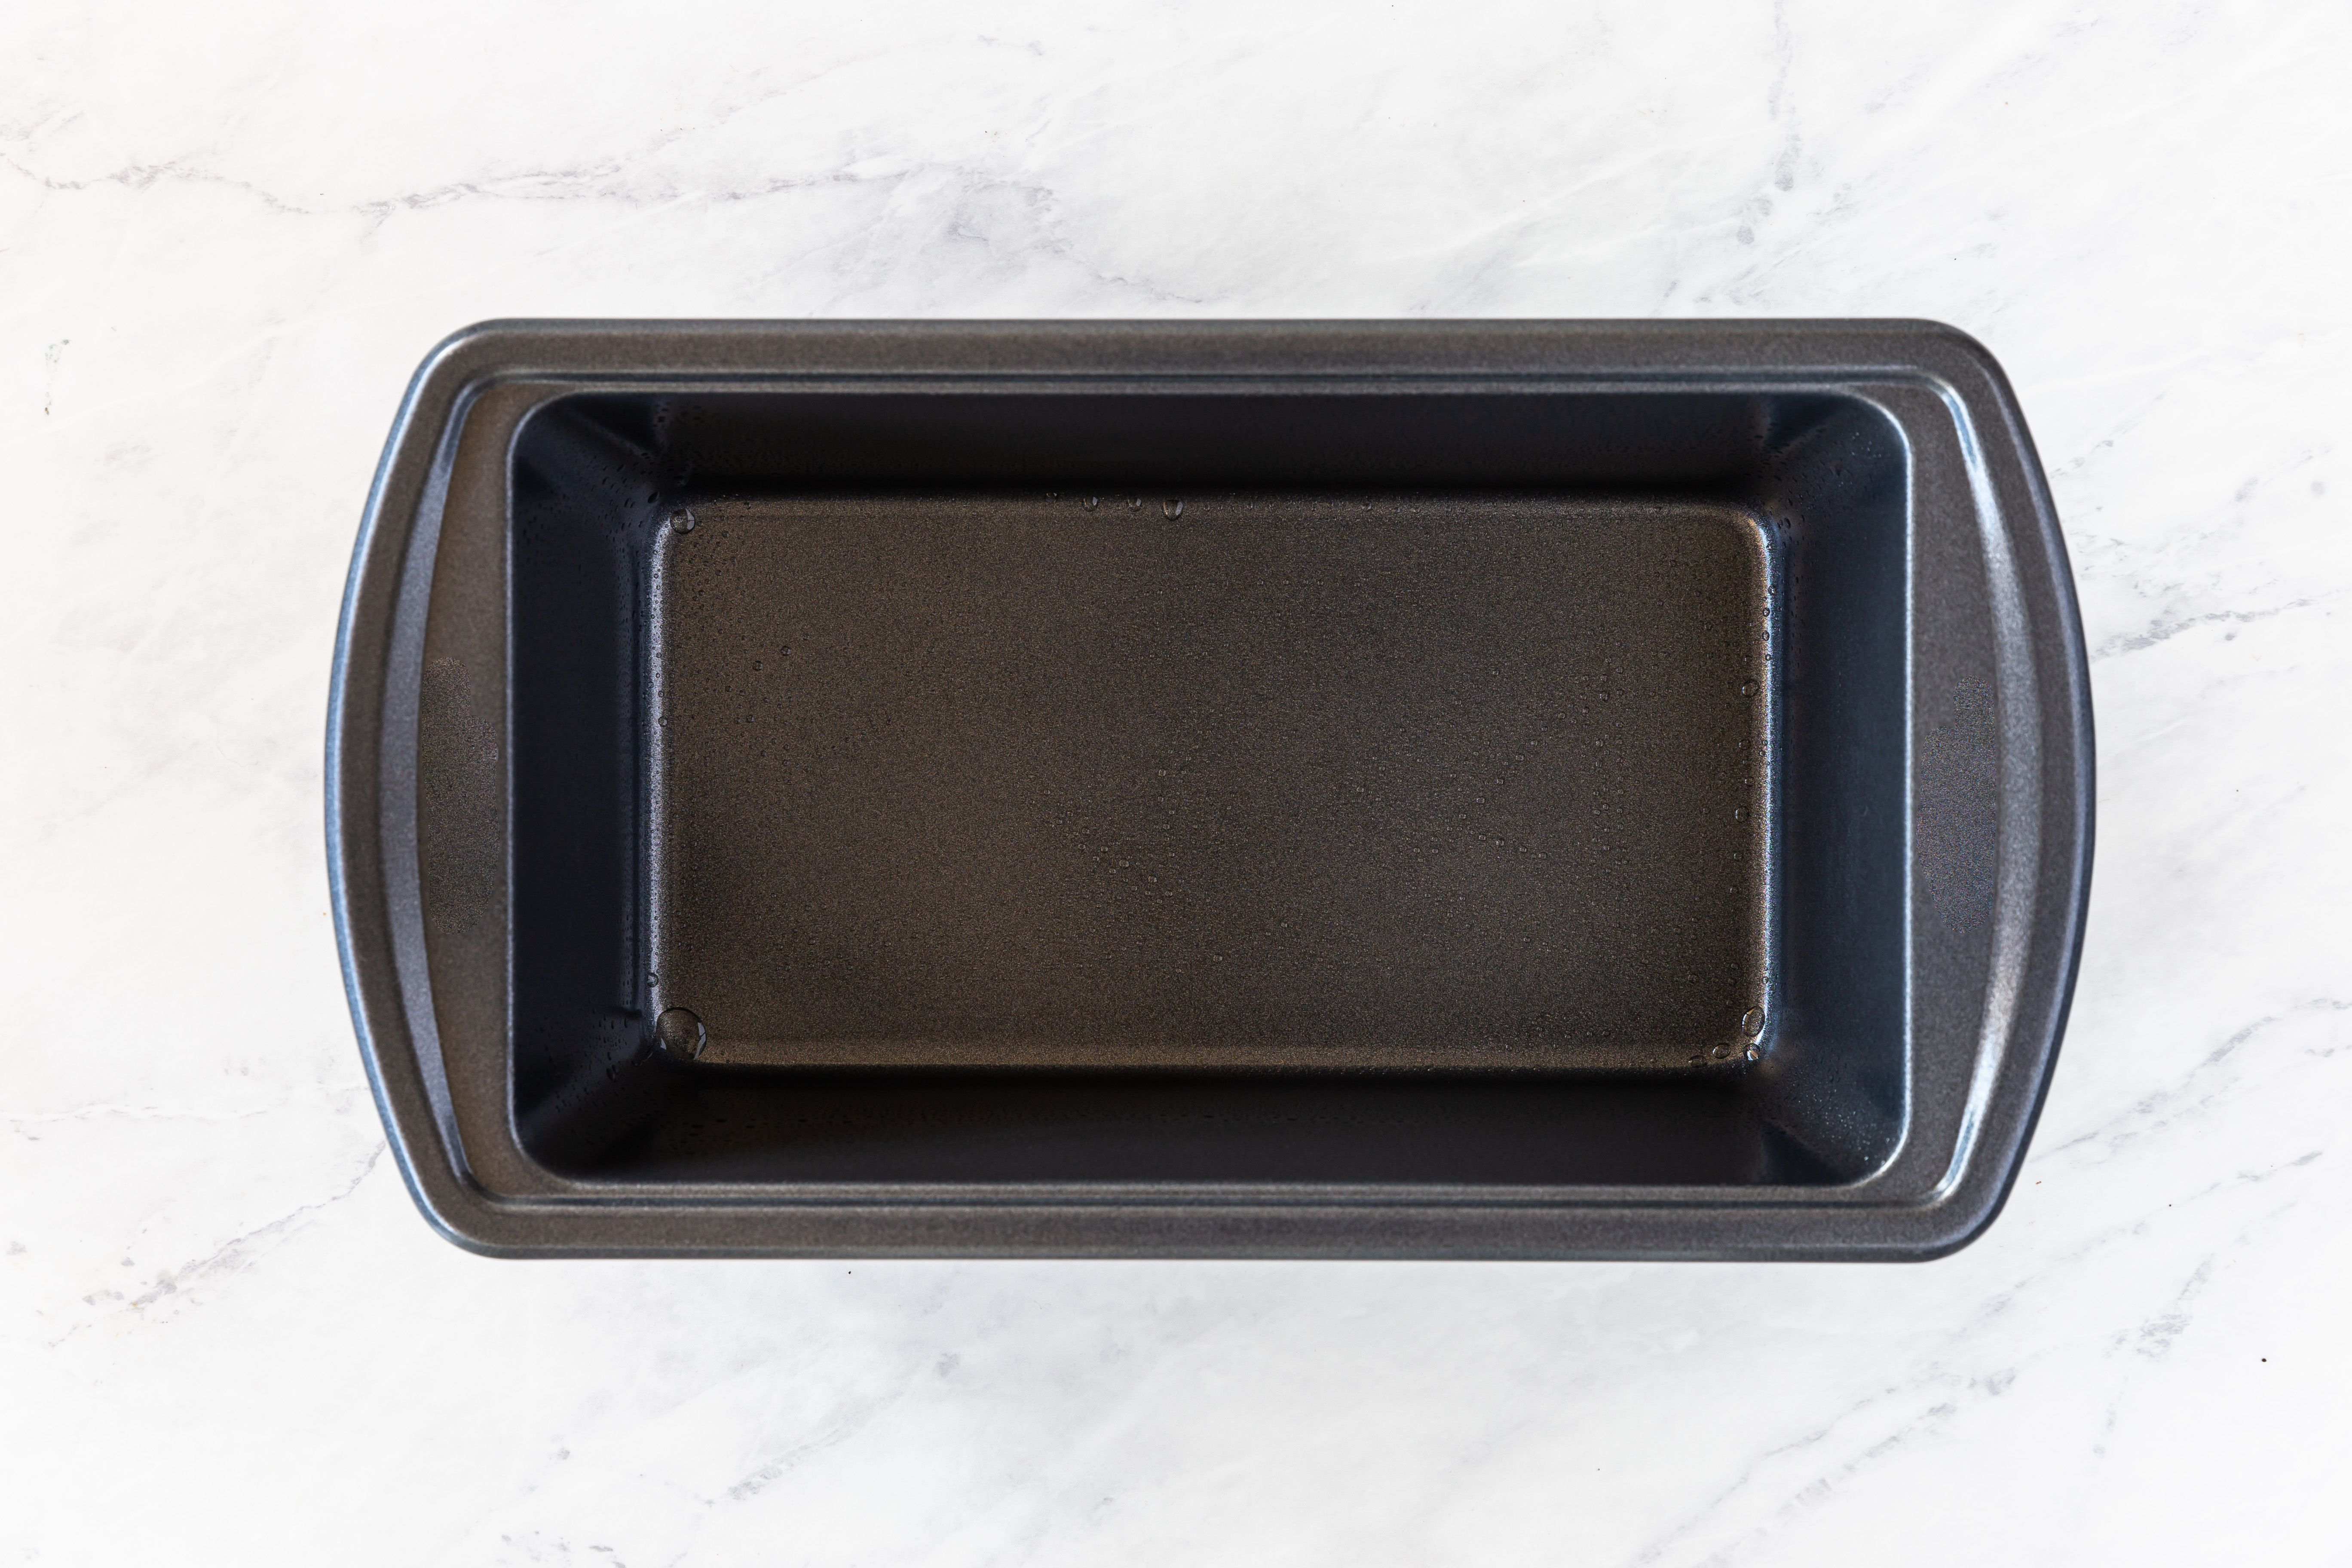 Lightly oiled loaf pan